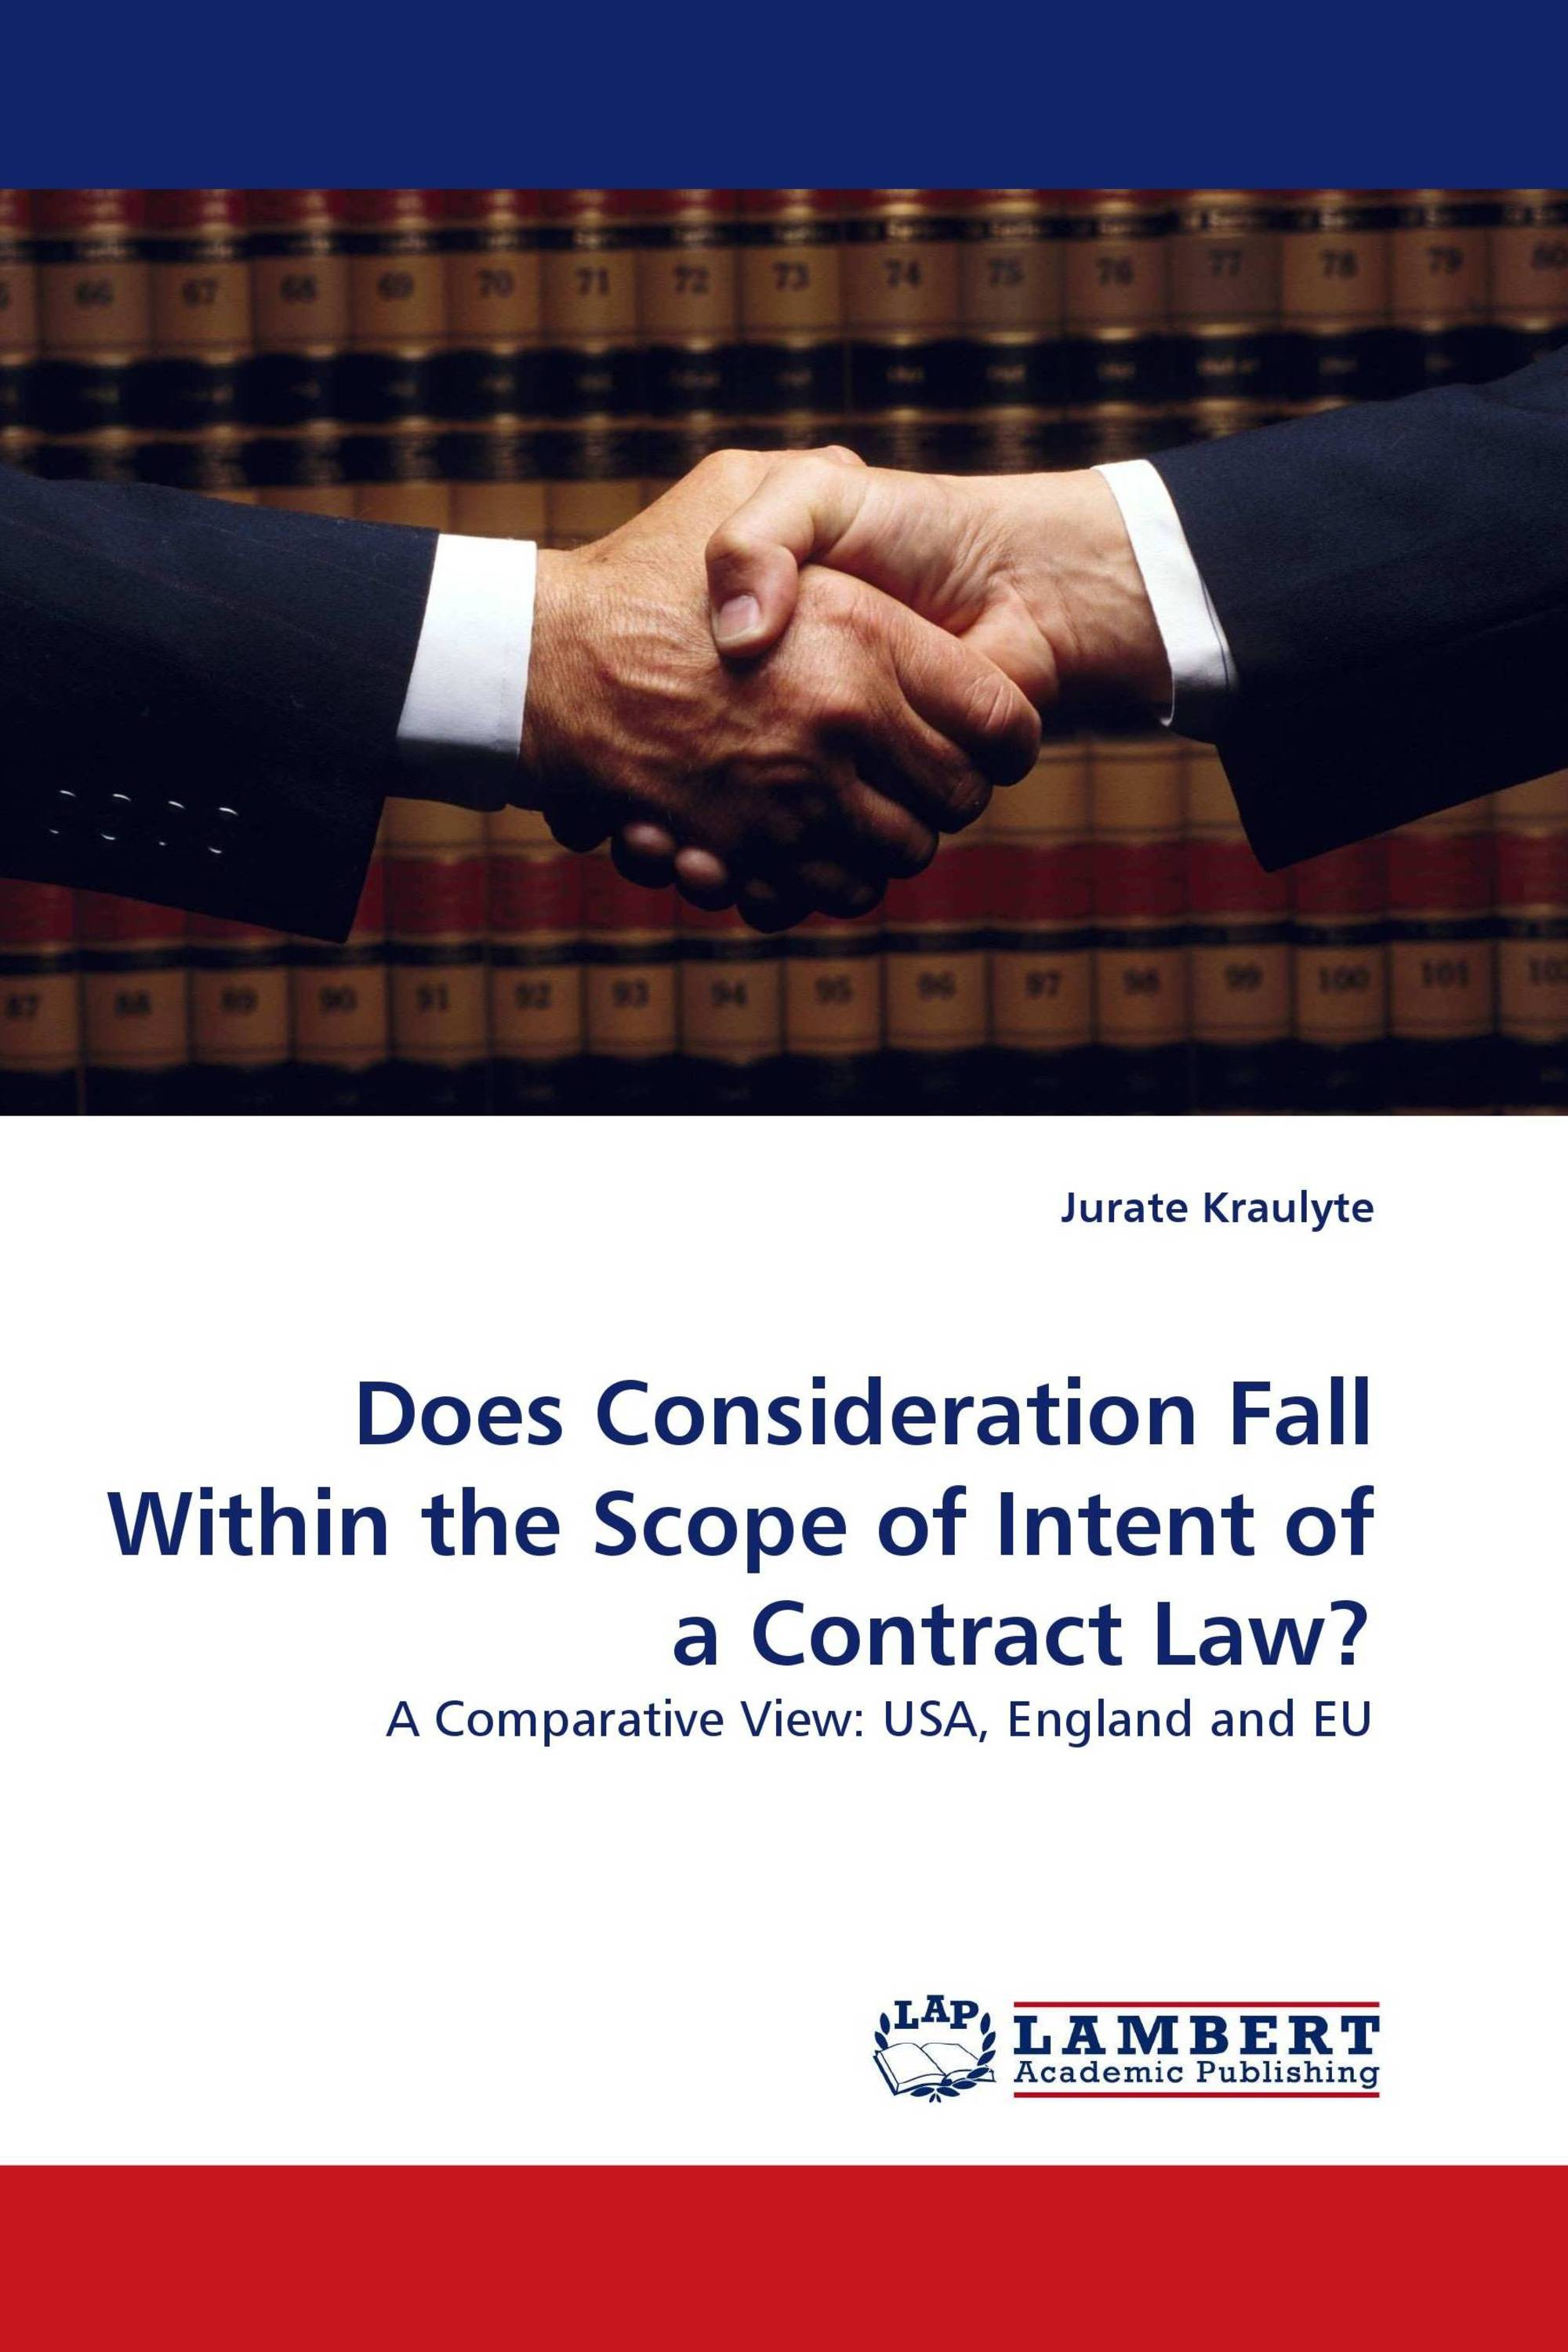 Does Consideration Fall Within the Scope of Intent of a Contract Law?